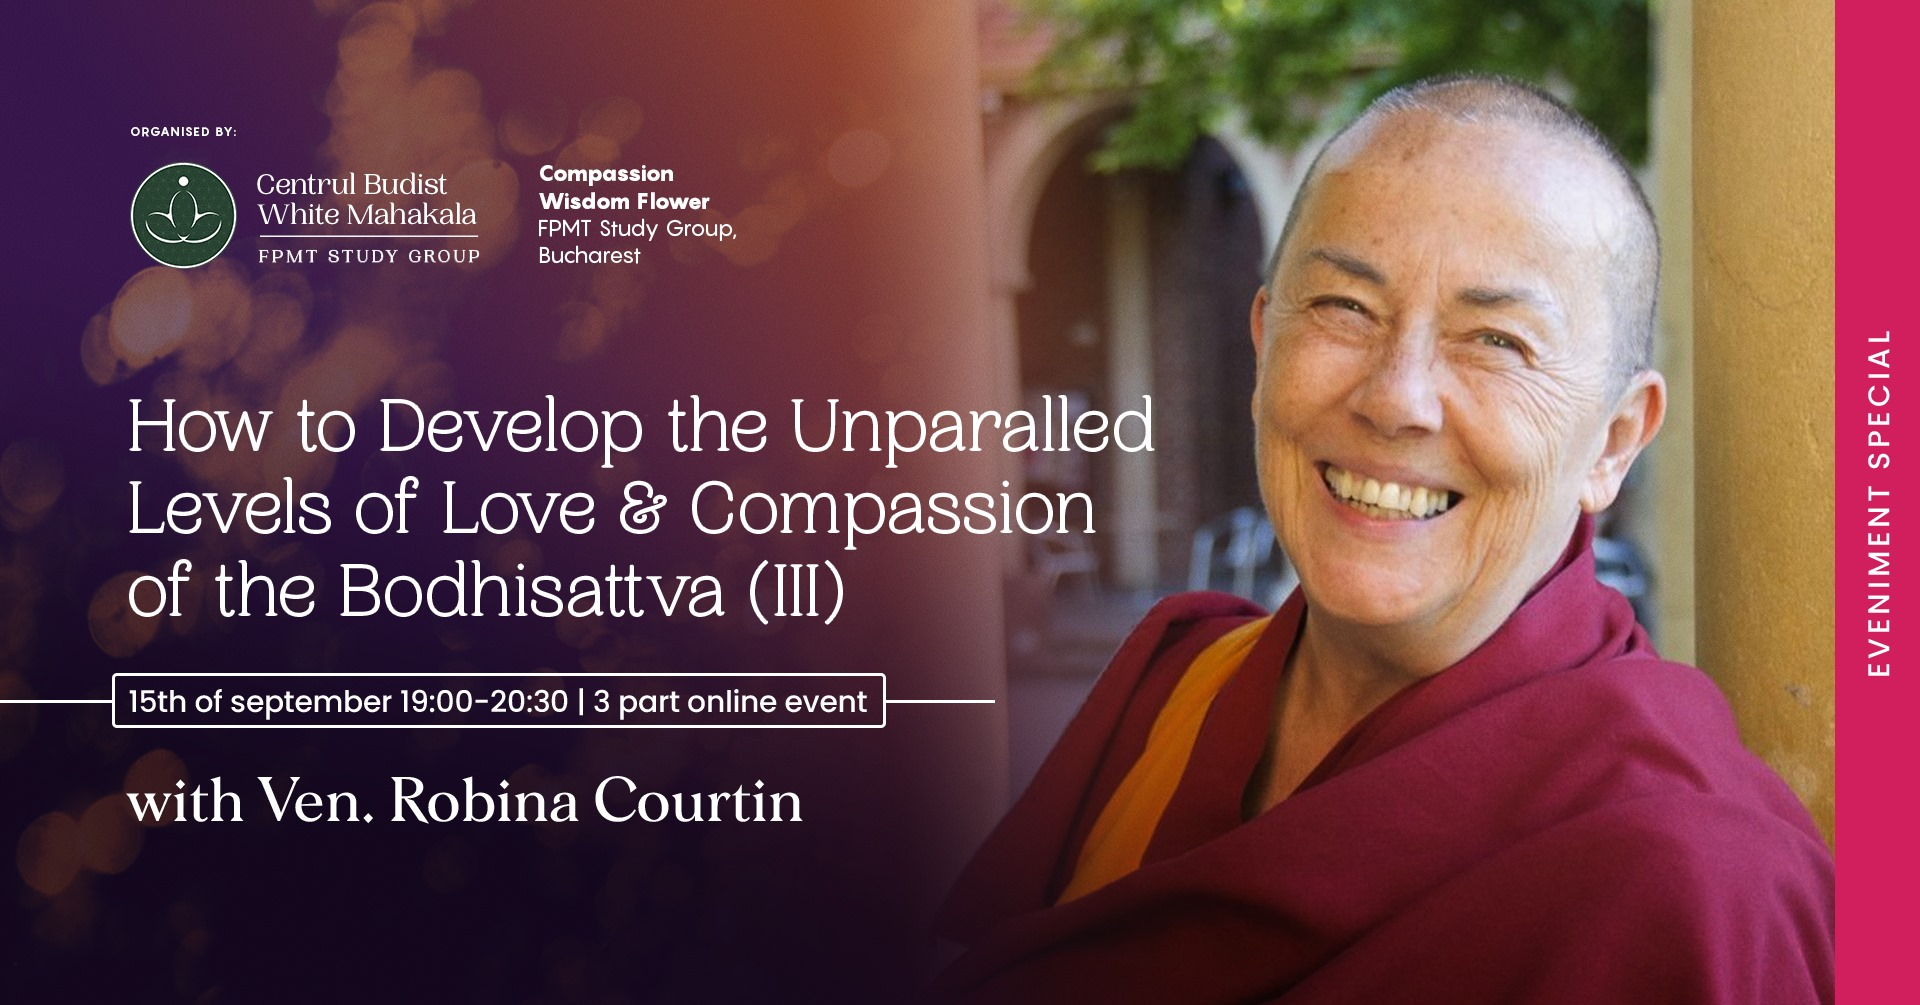 How to develop the Unparalleled Levels of Love & Compassion of the Bodhisattva (III)